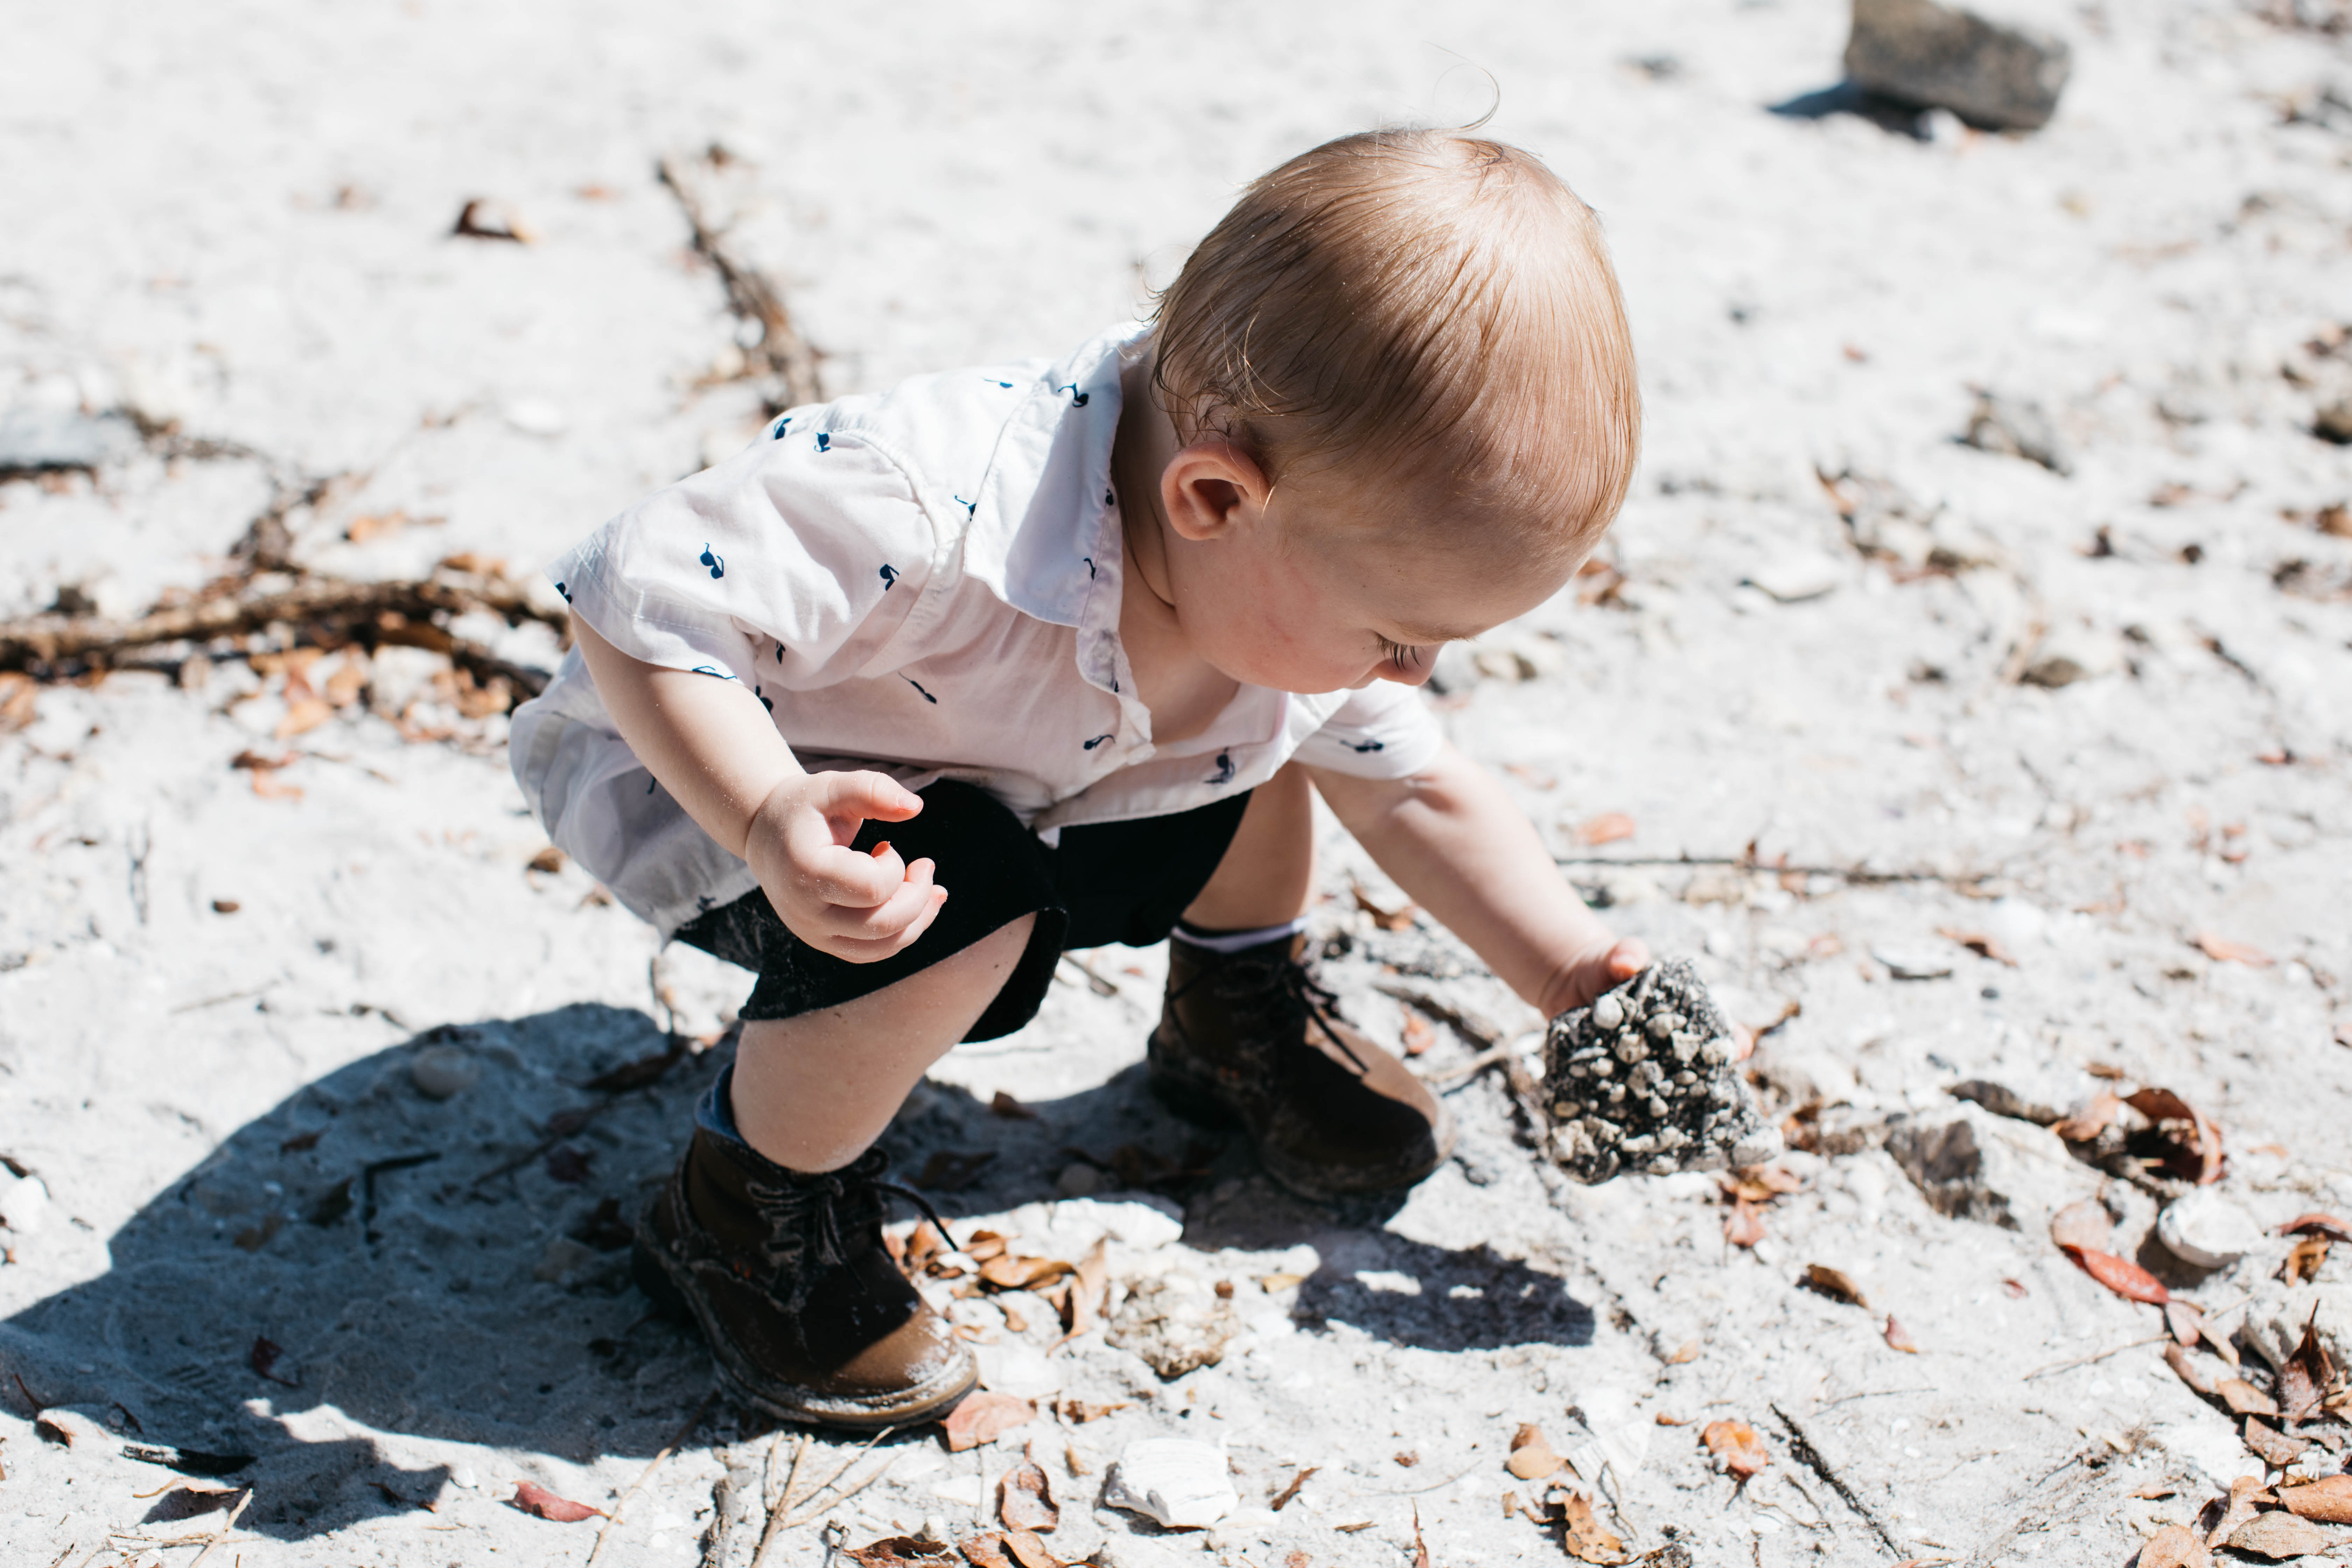 A boy playing in the sand.